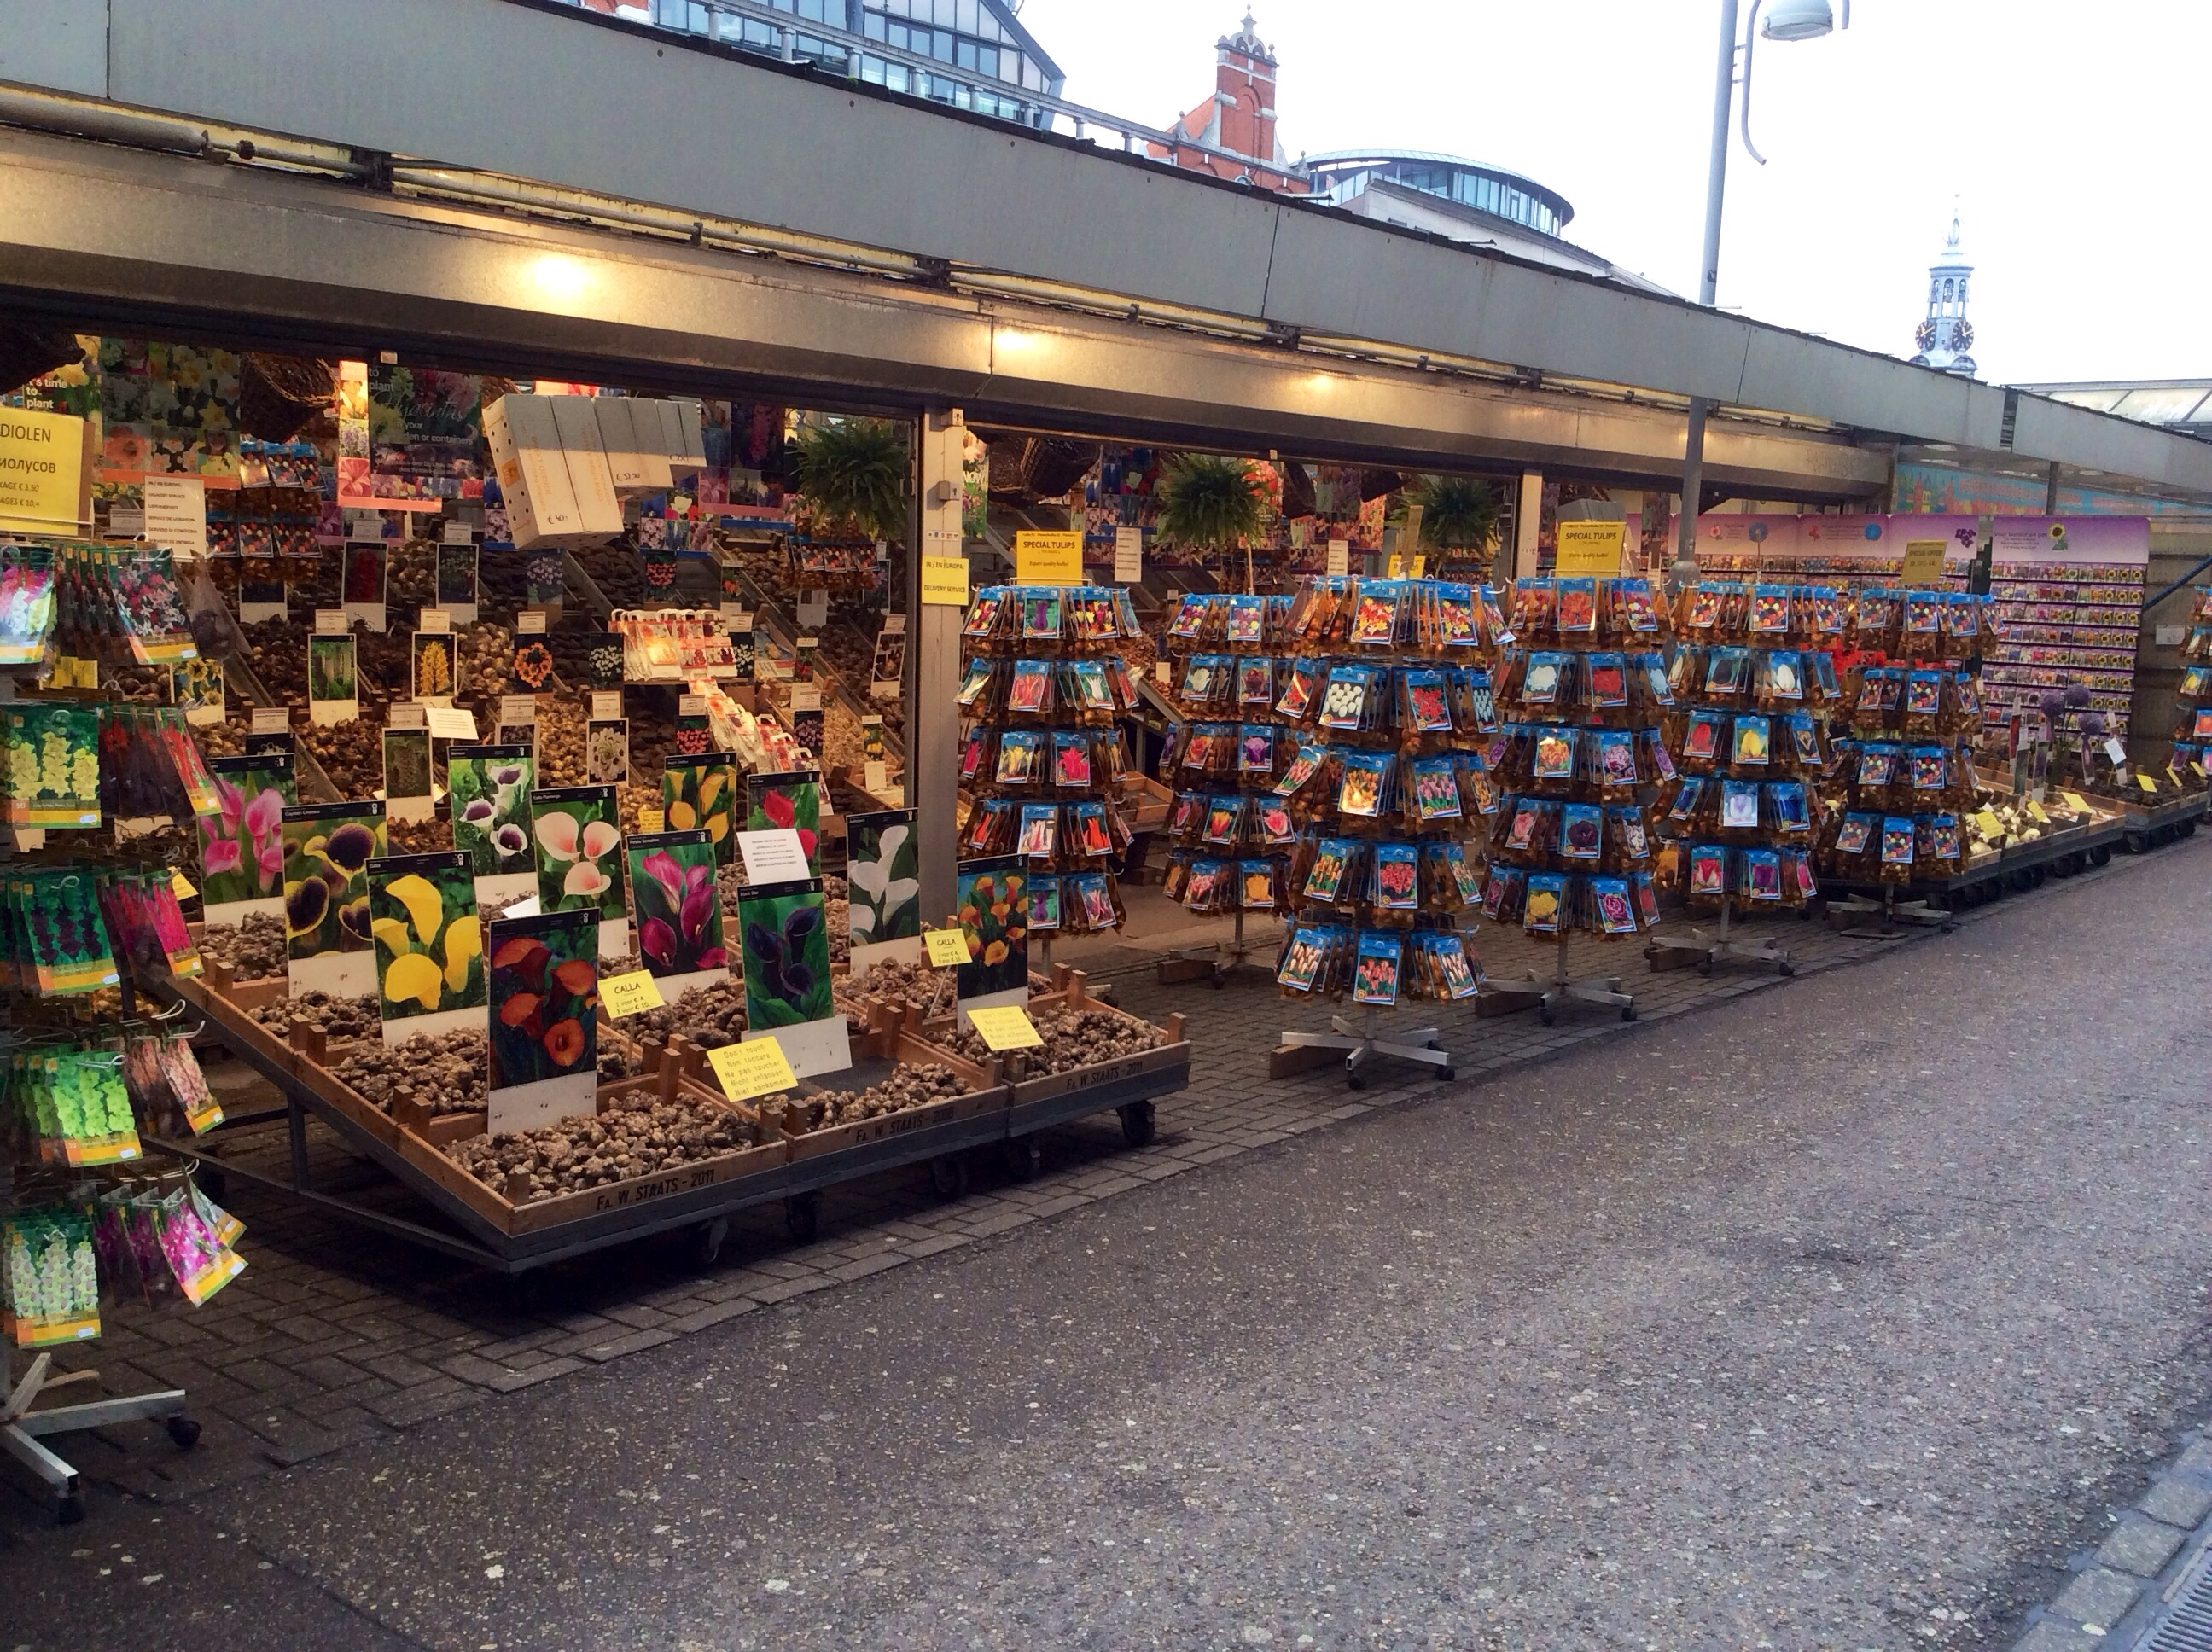 Stores packed with bulbs, mostly tulips but also other sorts